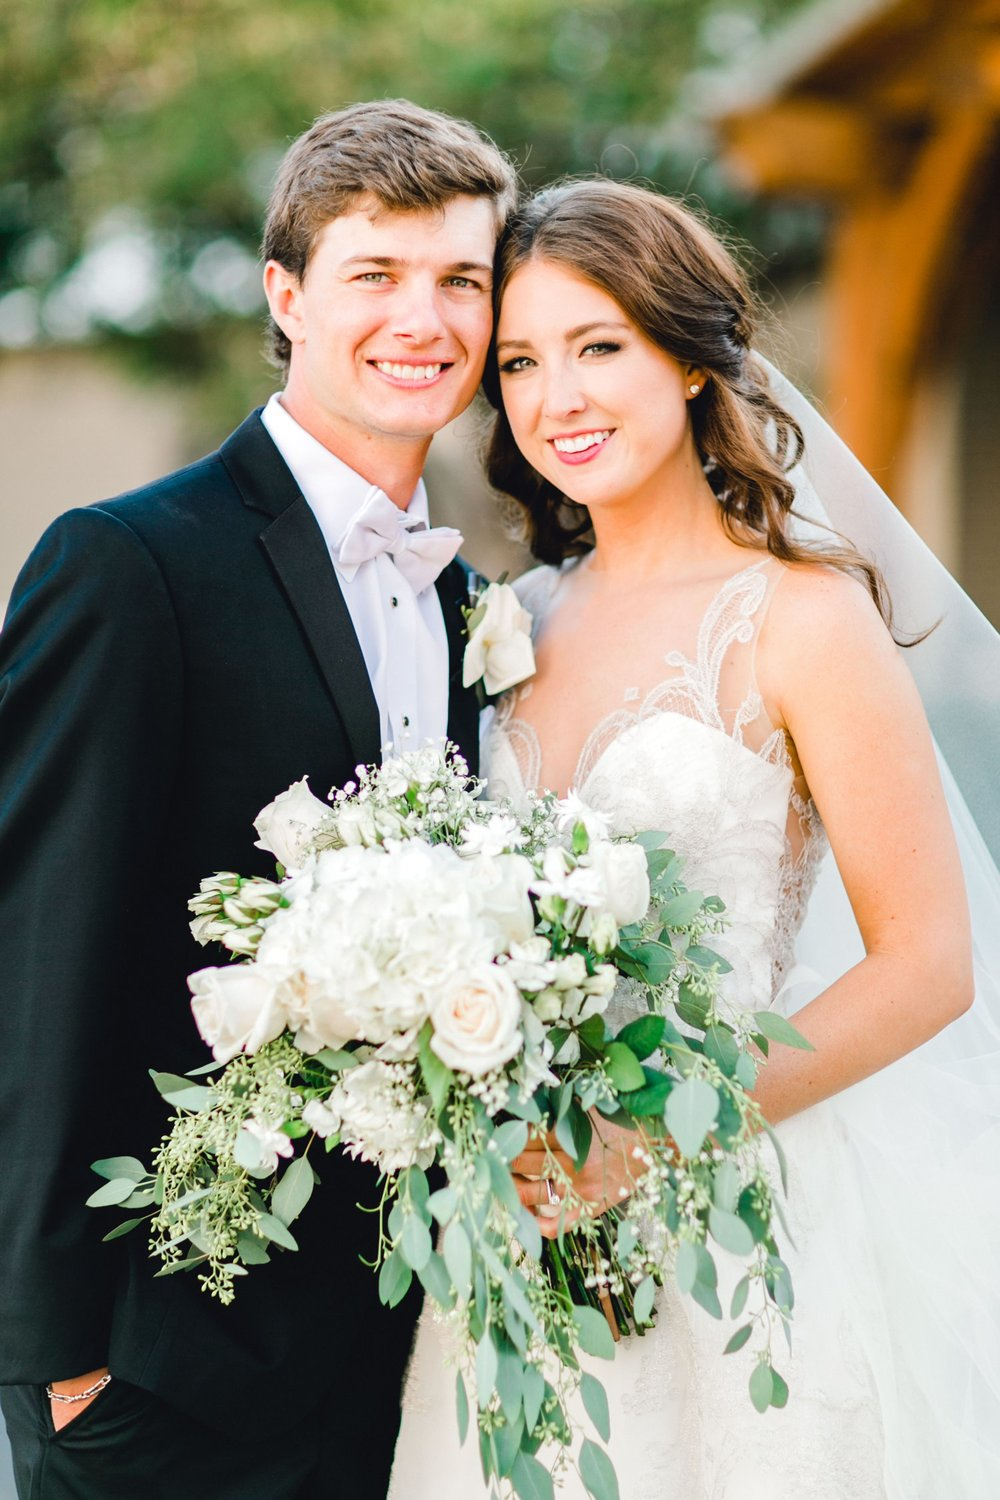 Hunter_and_Molly_Rawls_ALLEEJ_Lubbock_WEDDING_Legacy_Event_Center_0119.jpg